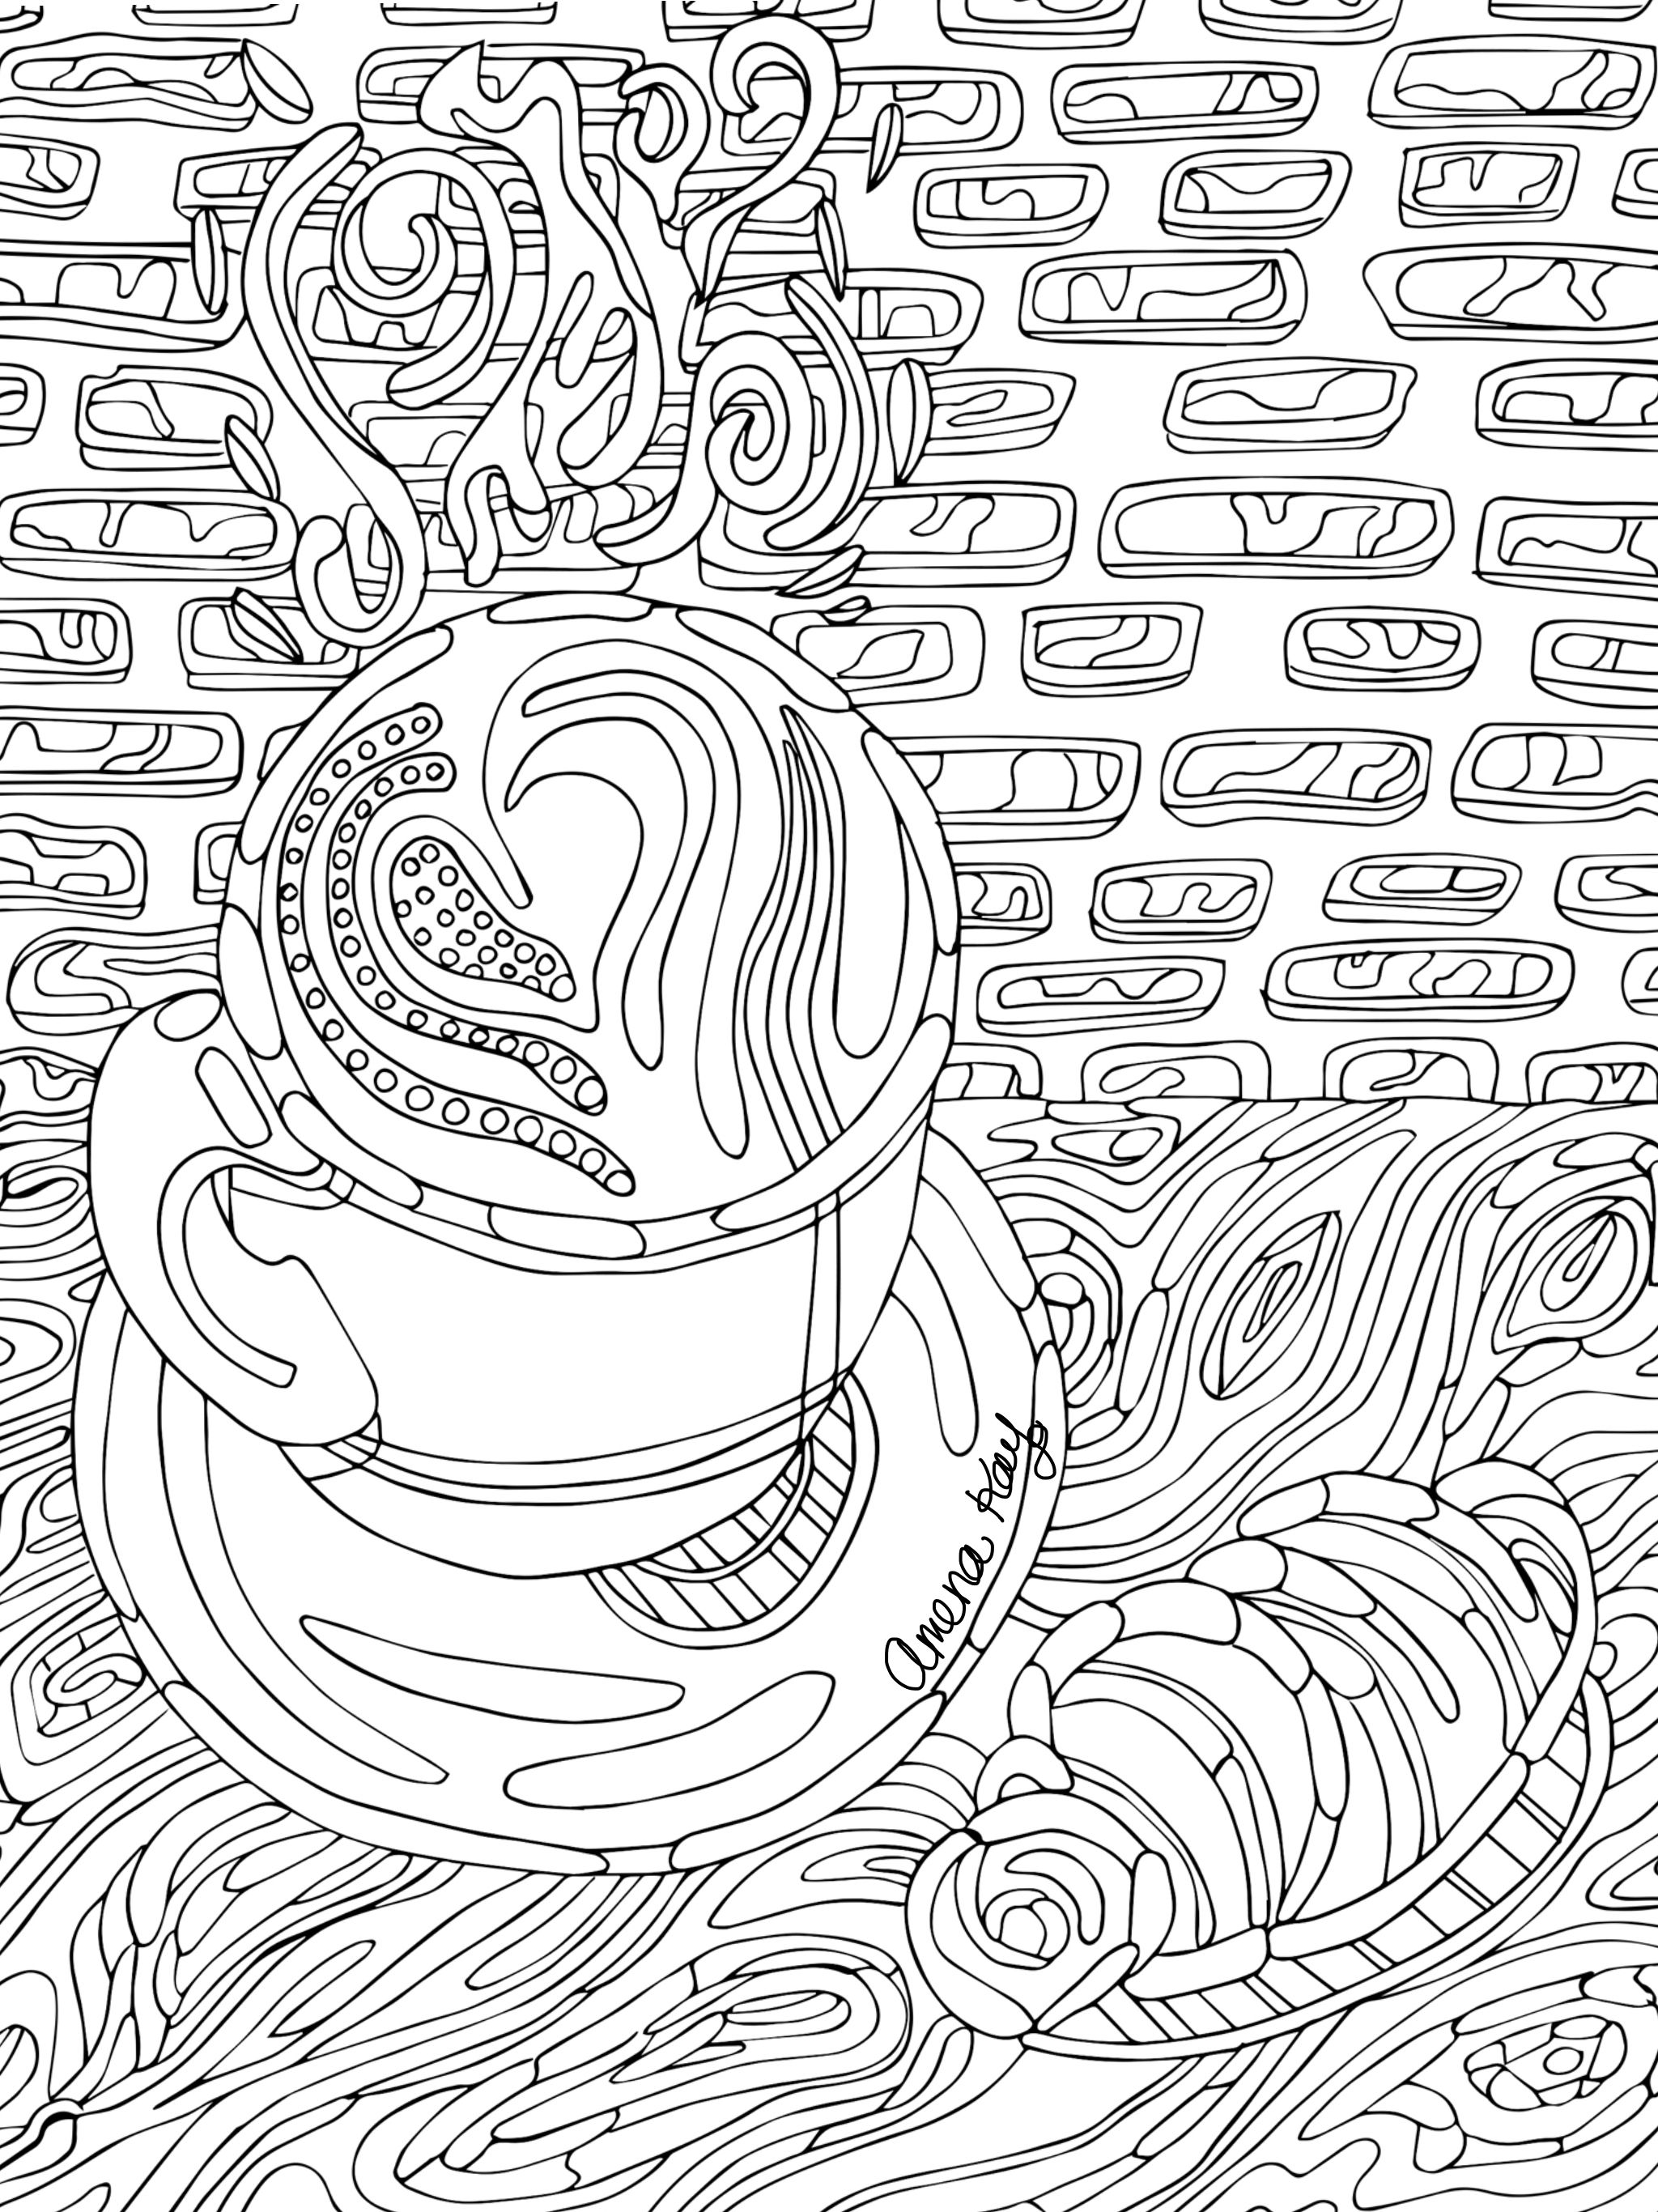 Free Hot Chocolate Coloring Page By Amena Kay Fine Art Follow On Facebook And Instagram Coloring Book Art Famous Art Coloring Coloring Book Album